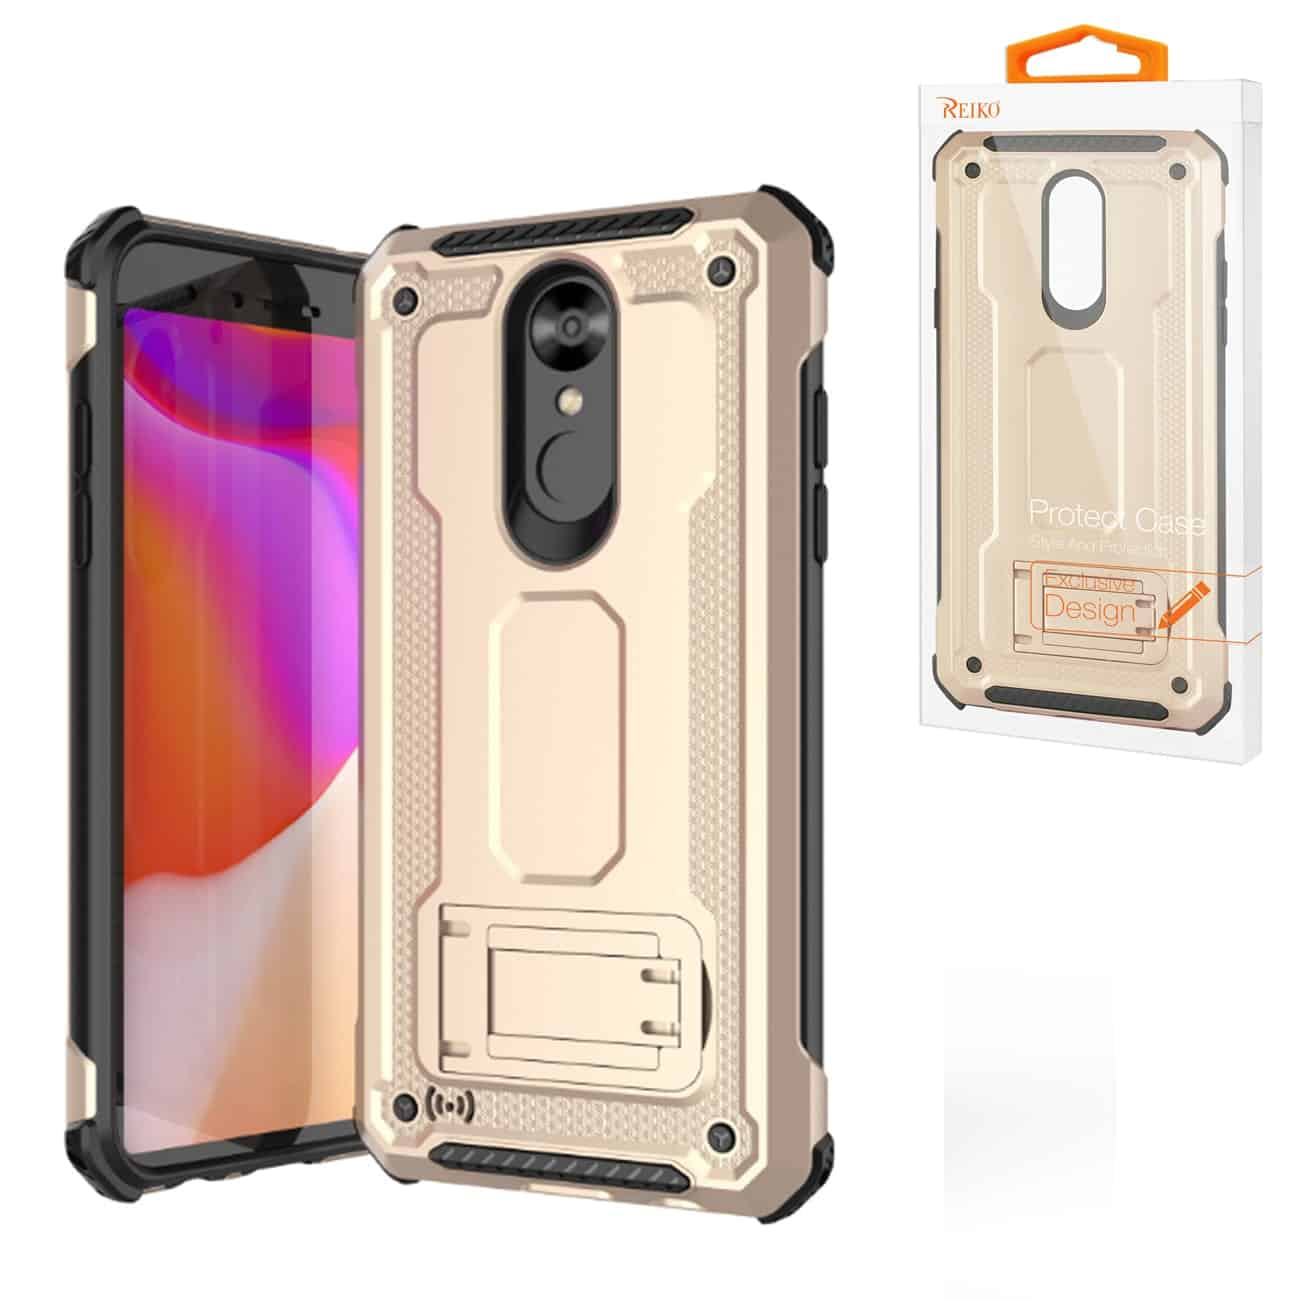 LG STYLO 4 Case With Kickstand In Gold